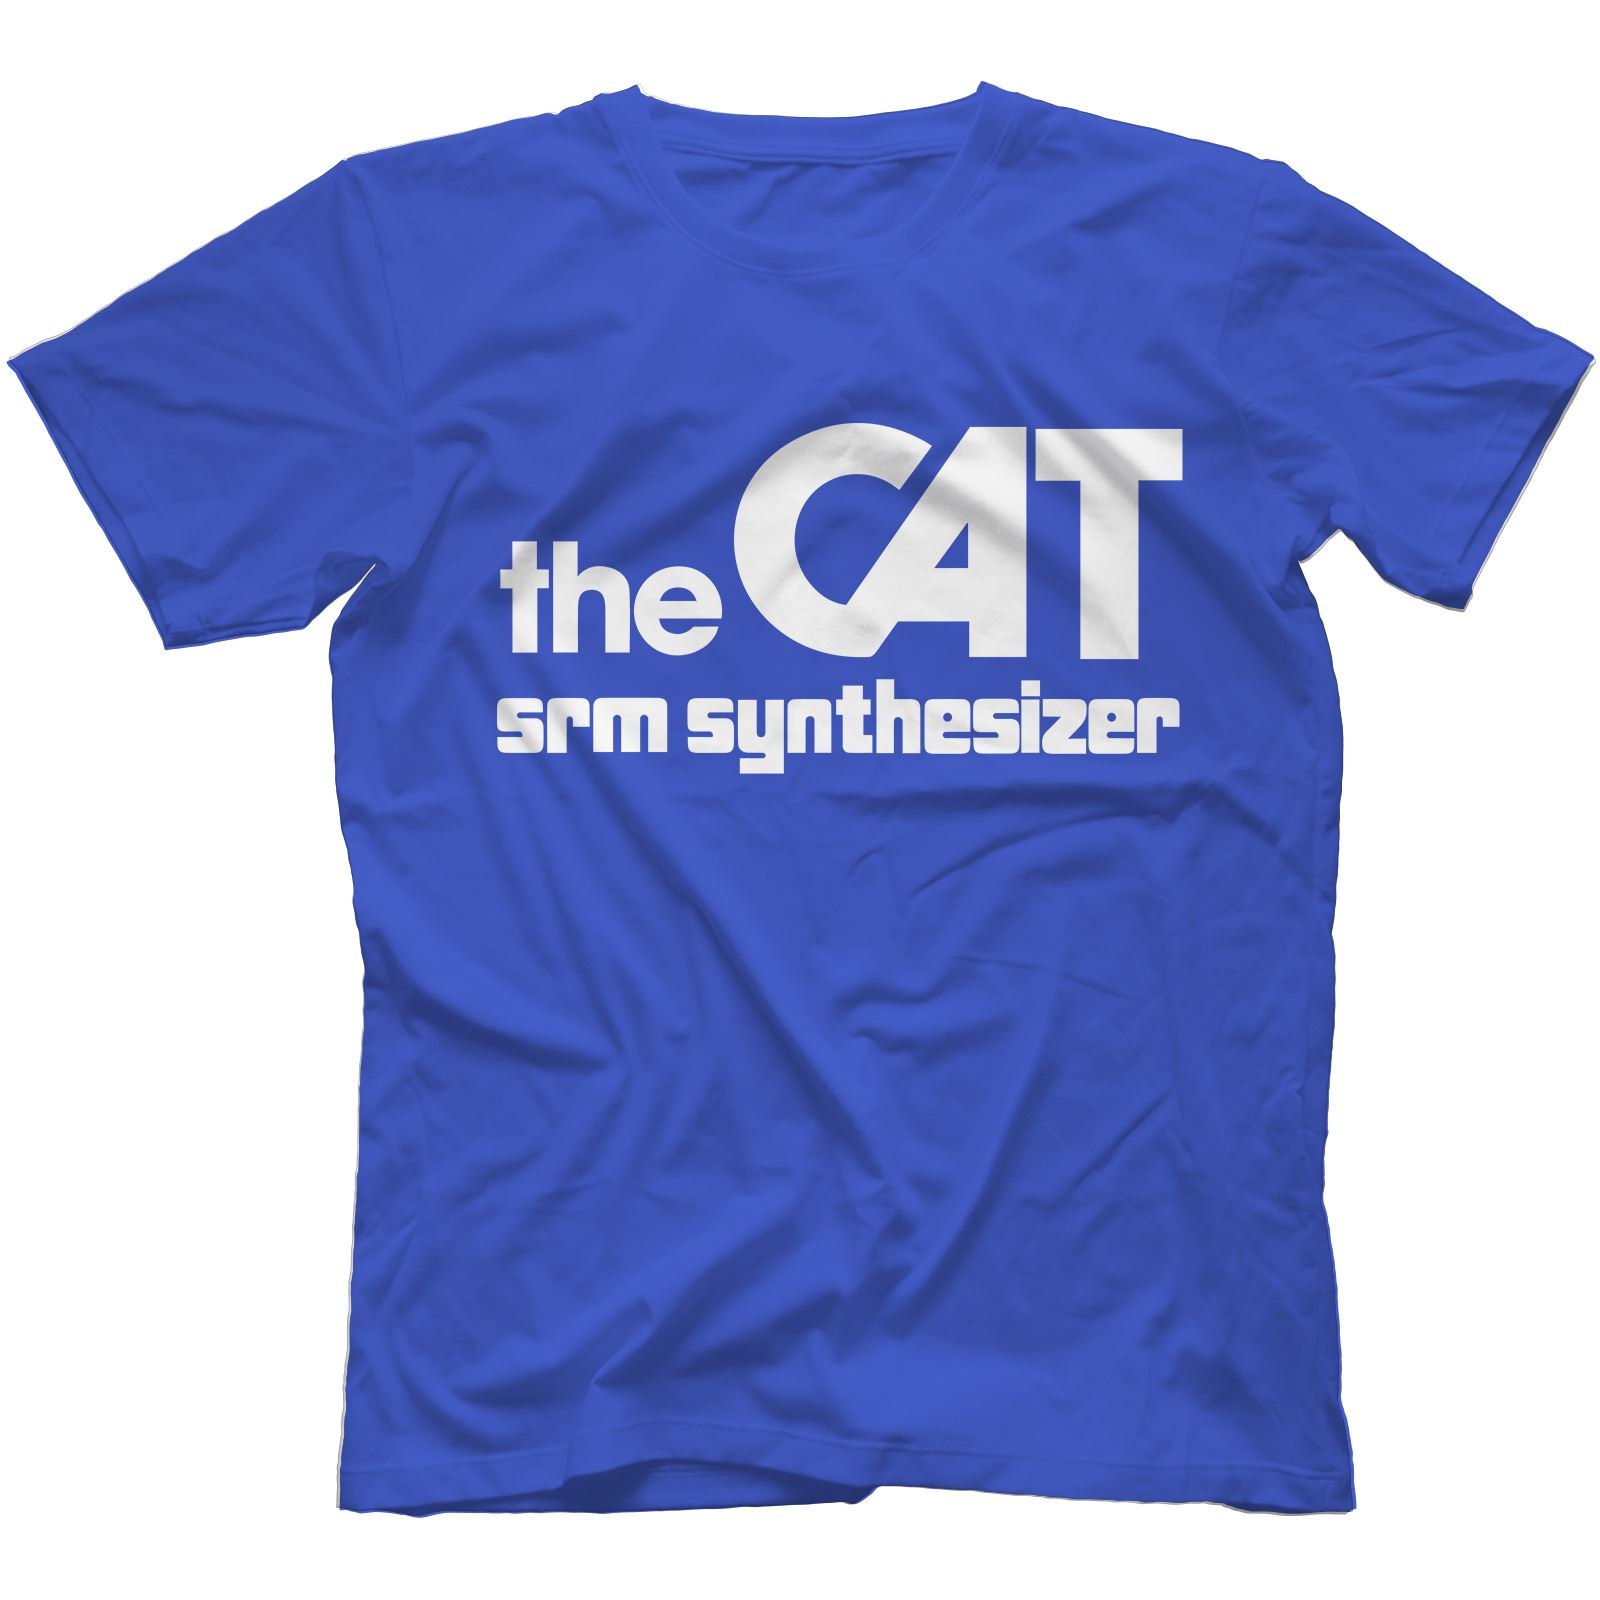 The-Cat-SRM-Synthesiser-T-Shirt-100-Cotton-Retro-Analog-Arp-Odyssey Indexbild 48